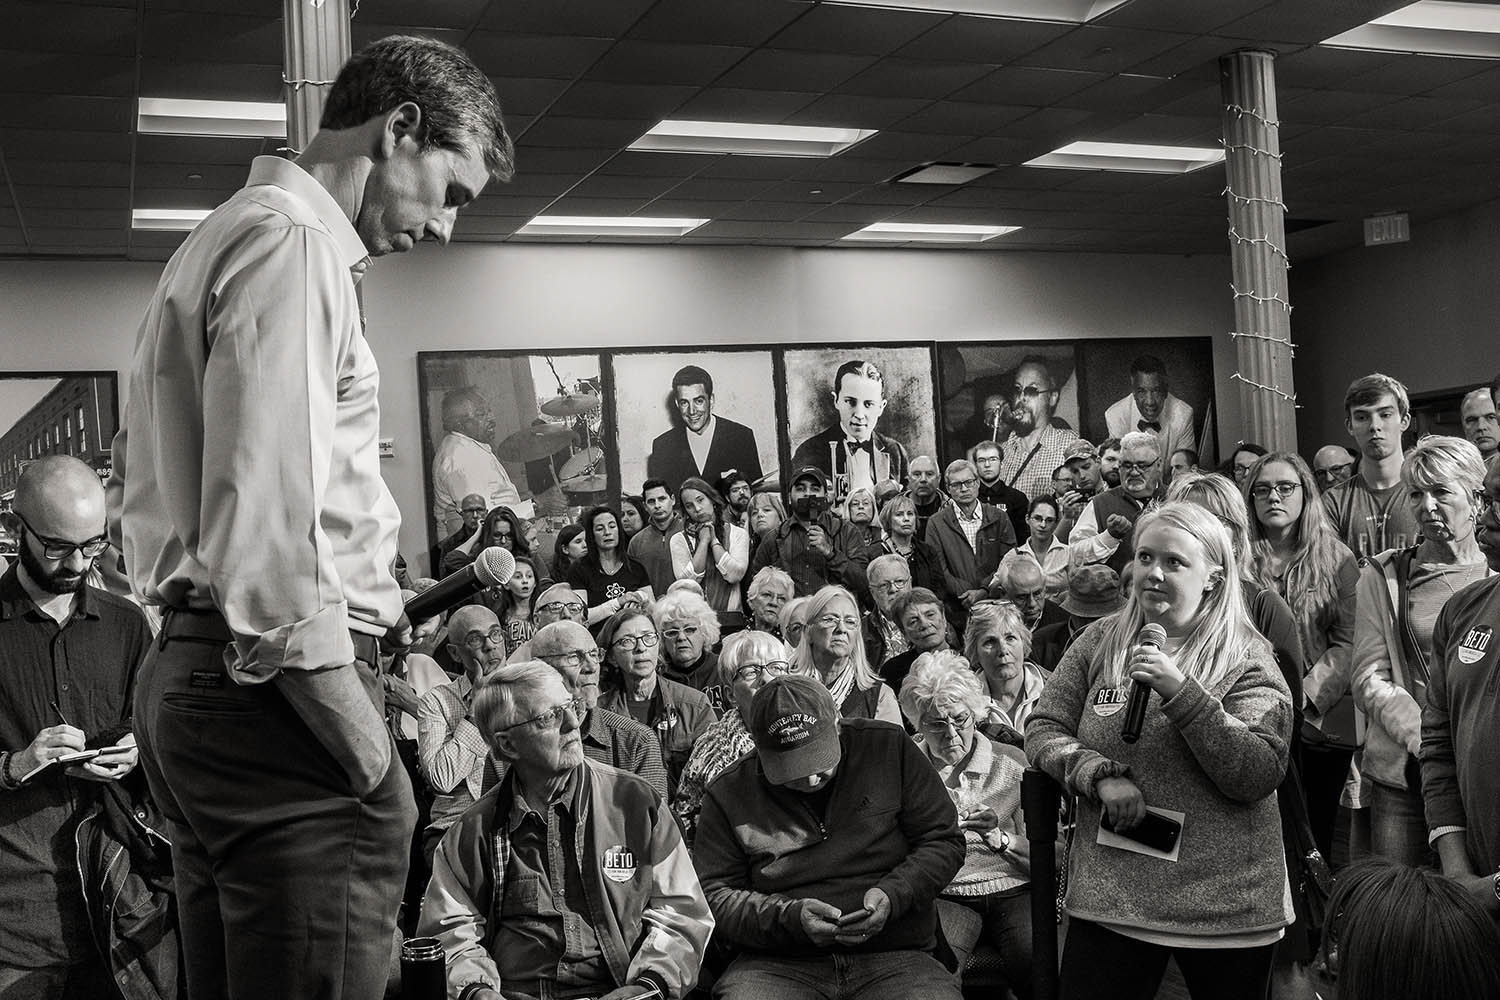 Can Beto Bounce Back? - O'Rourke's Senate campaign created huge enthusiasm, but he has faltered as a Presidential candidate. He's trying to revive his campaign by meeting every voter he can.By William FinneganNew Yorker Magazine